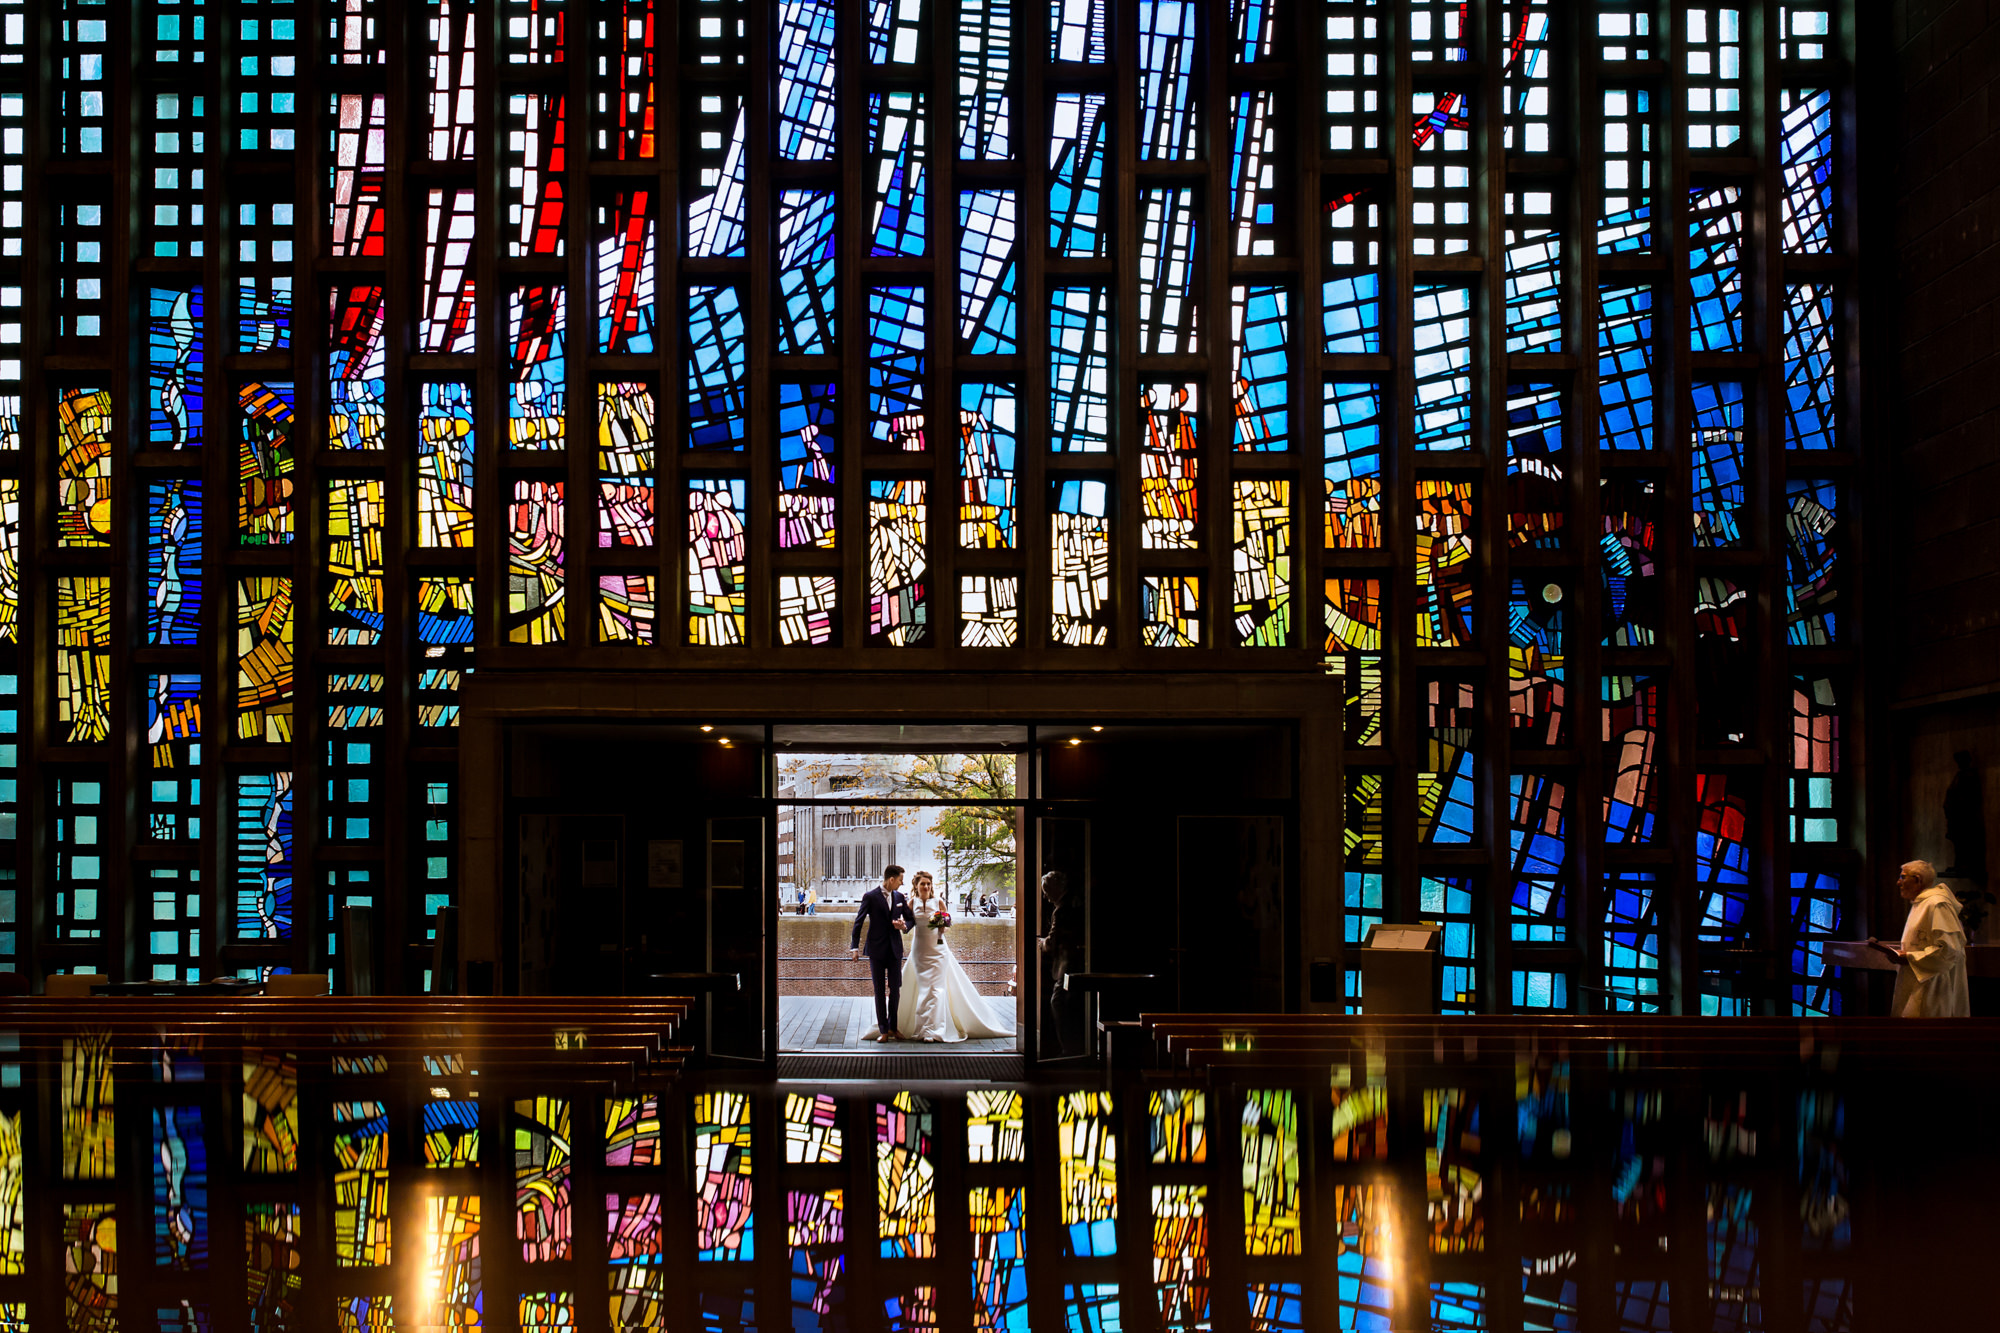 Creative reflection portrait entering church photo by Fotobelle: Isabelle Hattink